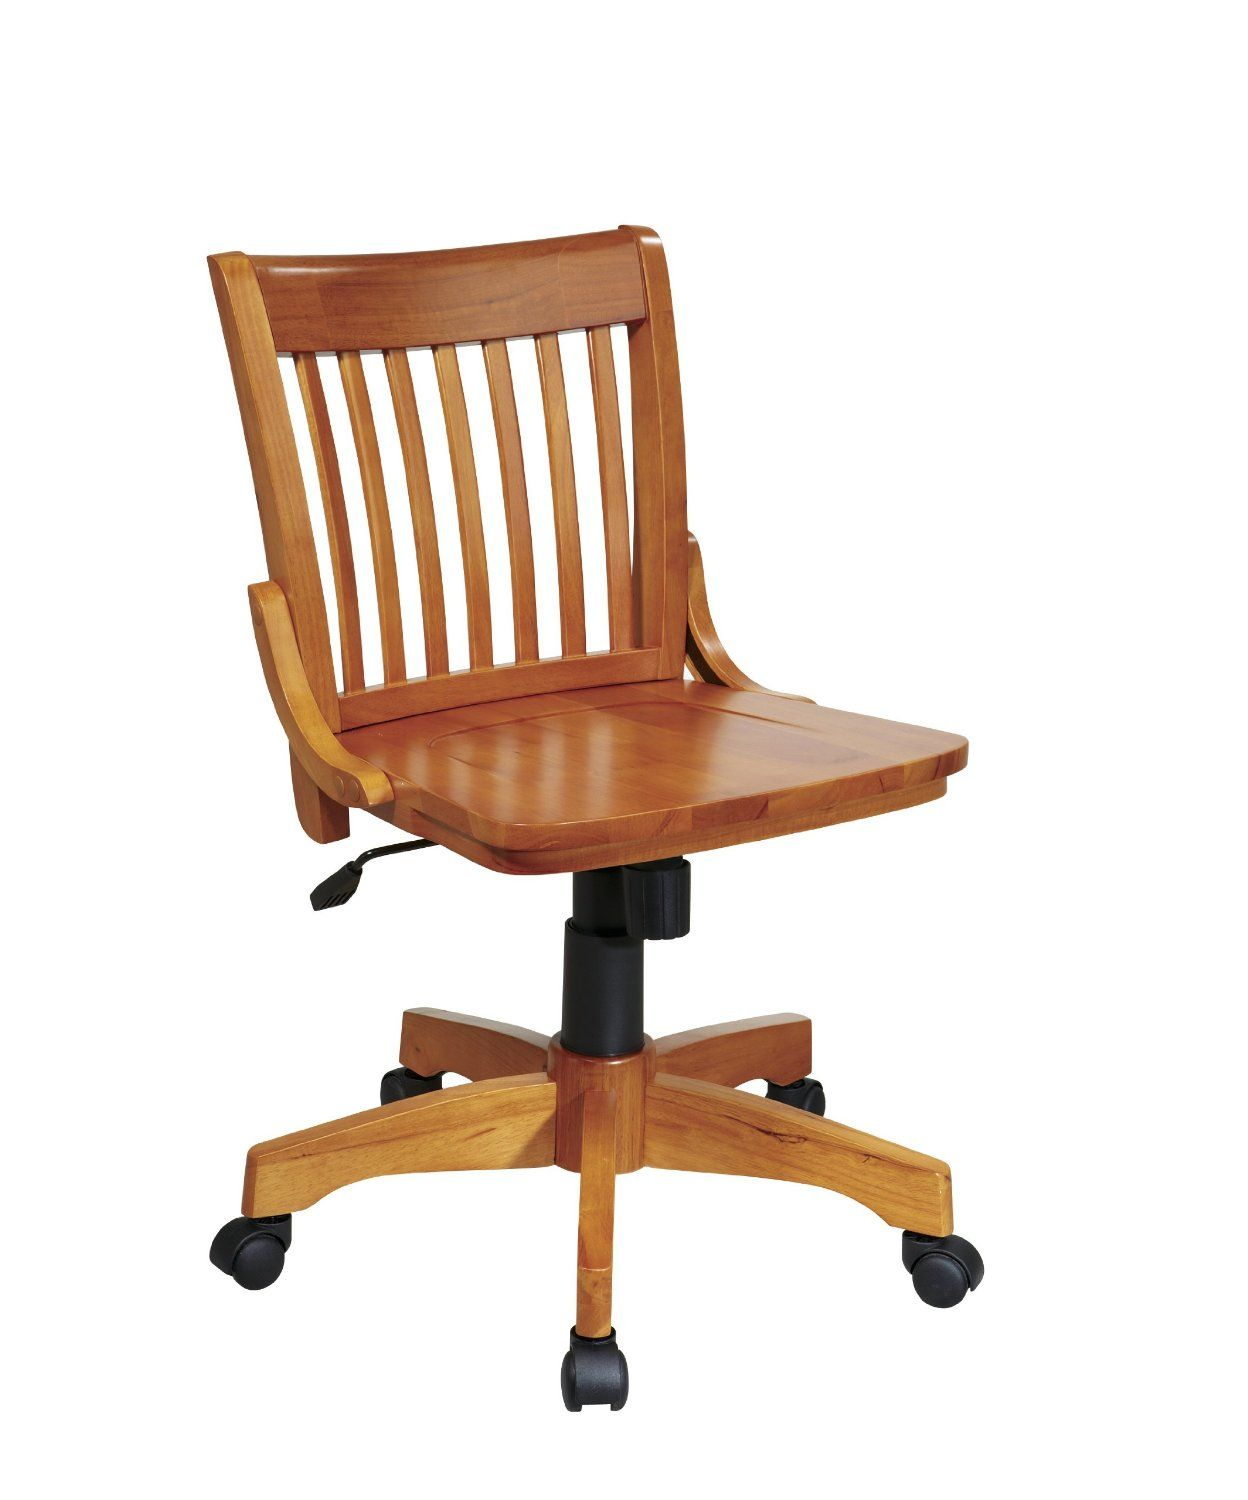 dbec office best of galaxy bi remarkable on tall big chair xl amazon webs chairs temple